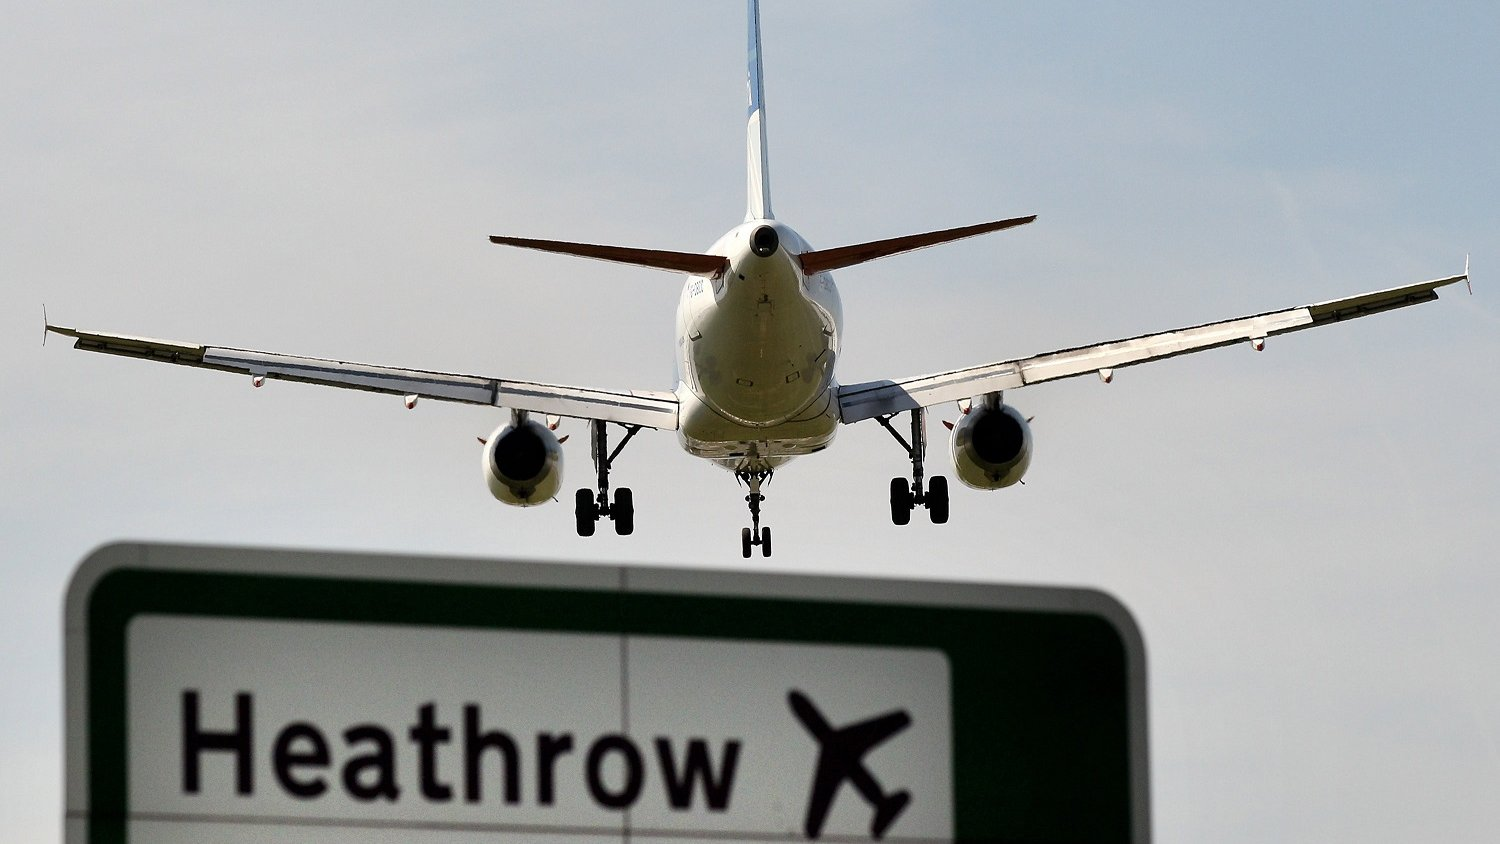 The Airports Commission backs a third Heathrow runway, saying it will add £147bn in economic growth and 70,000 jobs by 2050.